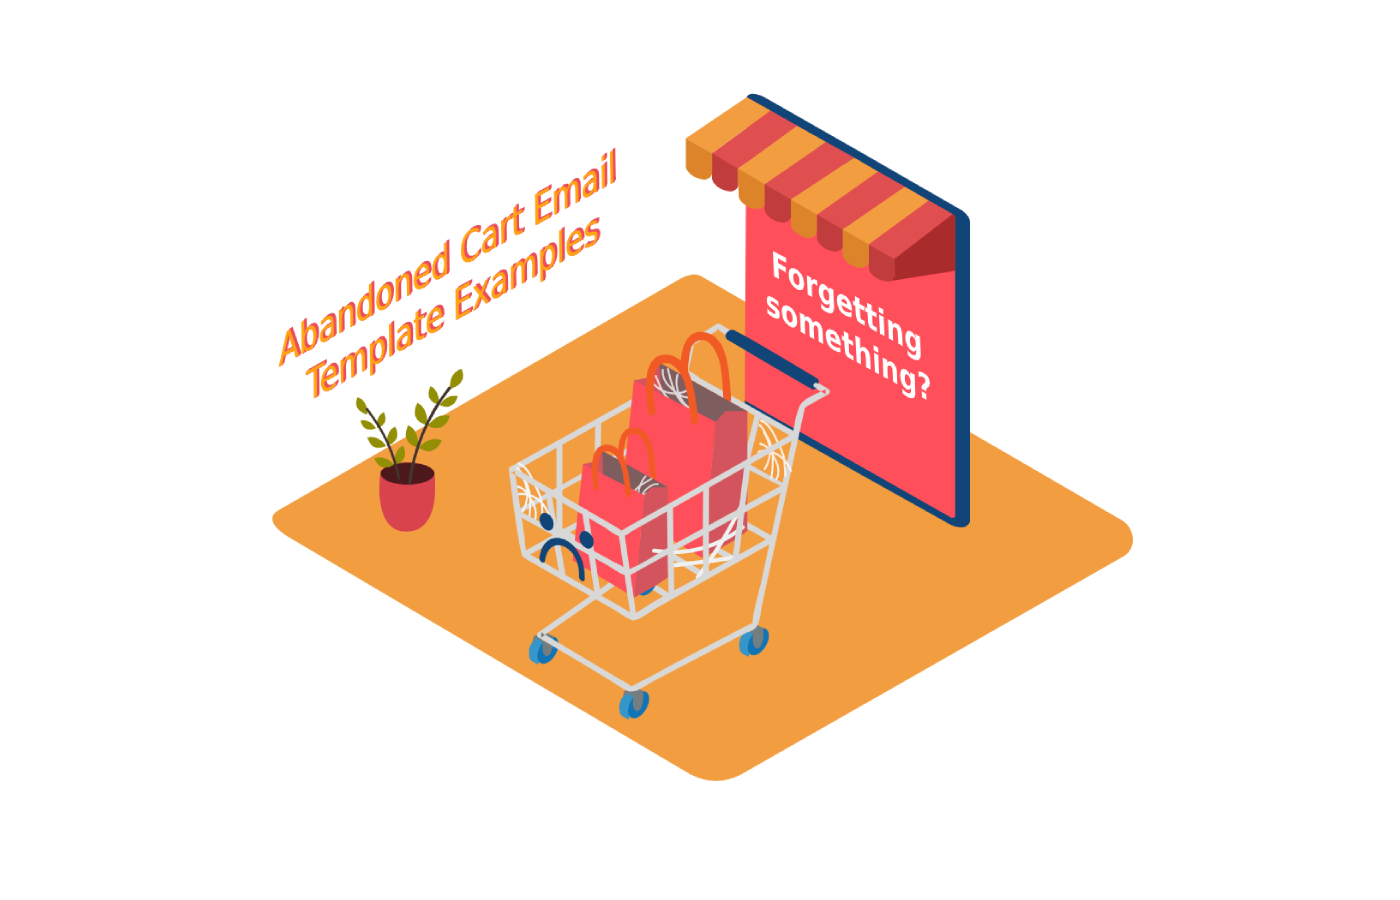 abandoned_cart_email_template_examples